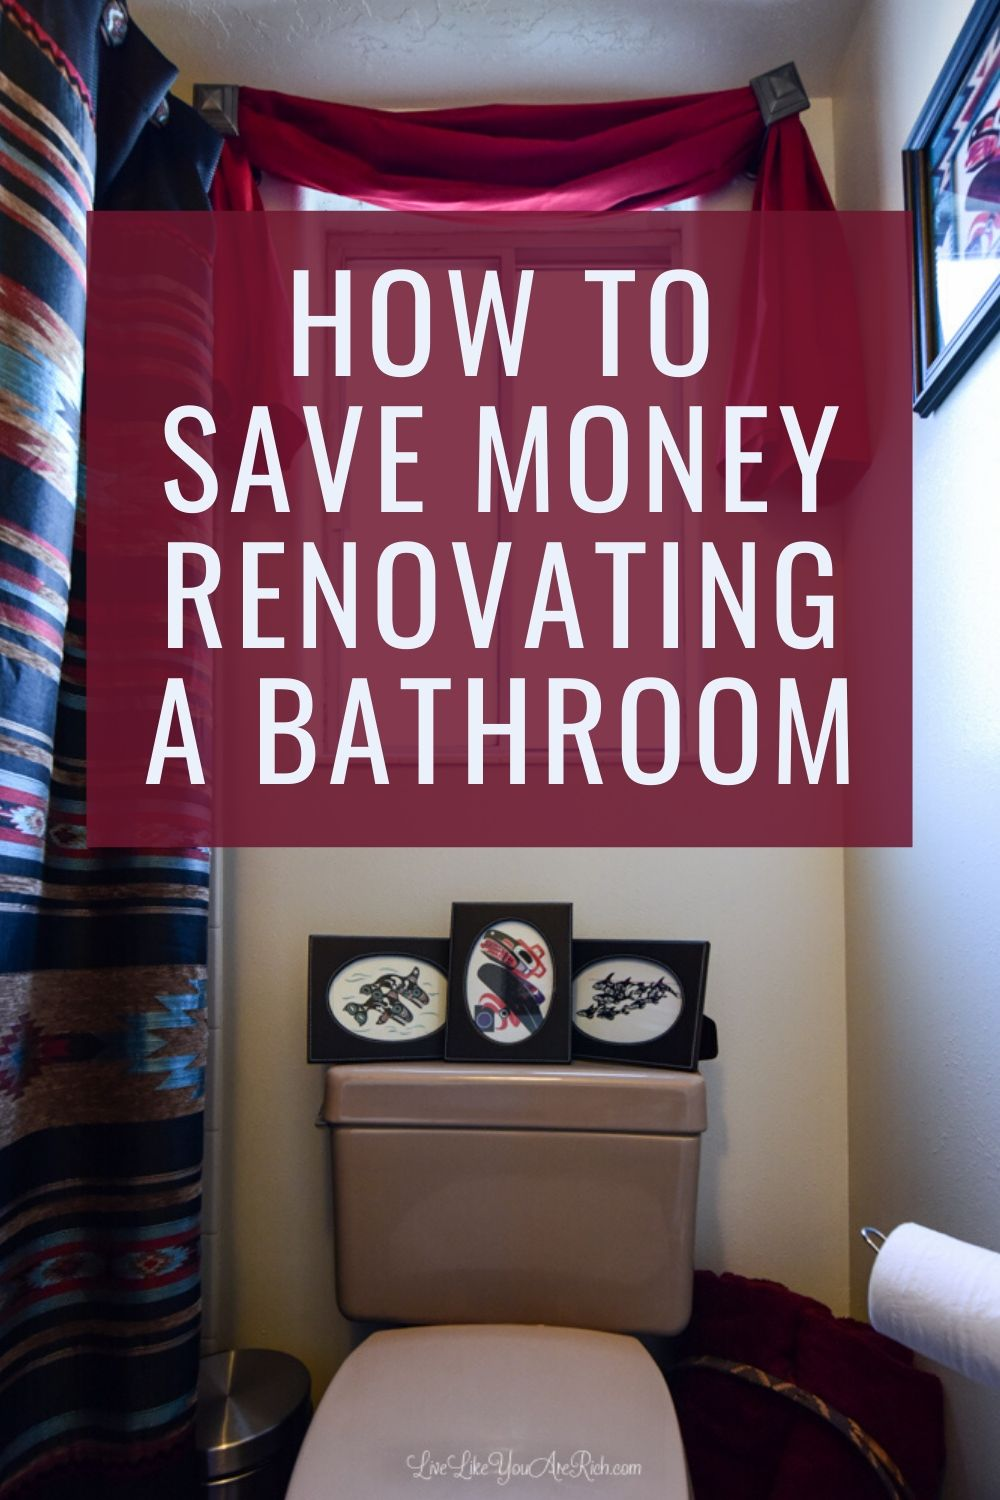 The average inexpensive DIY bathroom renovation is about $5,000. For just over $500 we were able to almost completely renovate, paint, and decorate our bathroom. I'm sharing how we did our bathroom renovation on a budget.